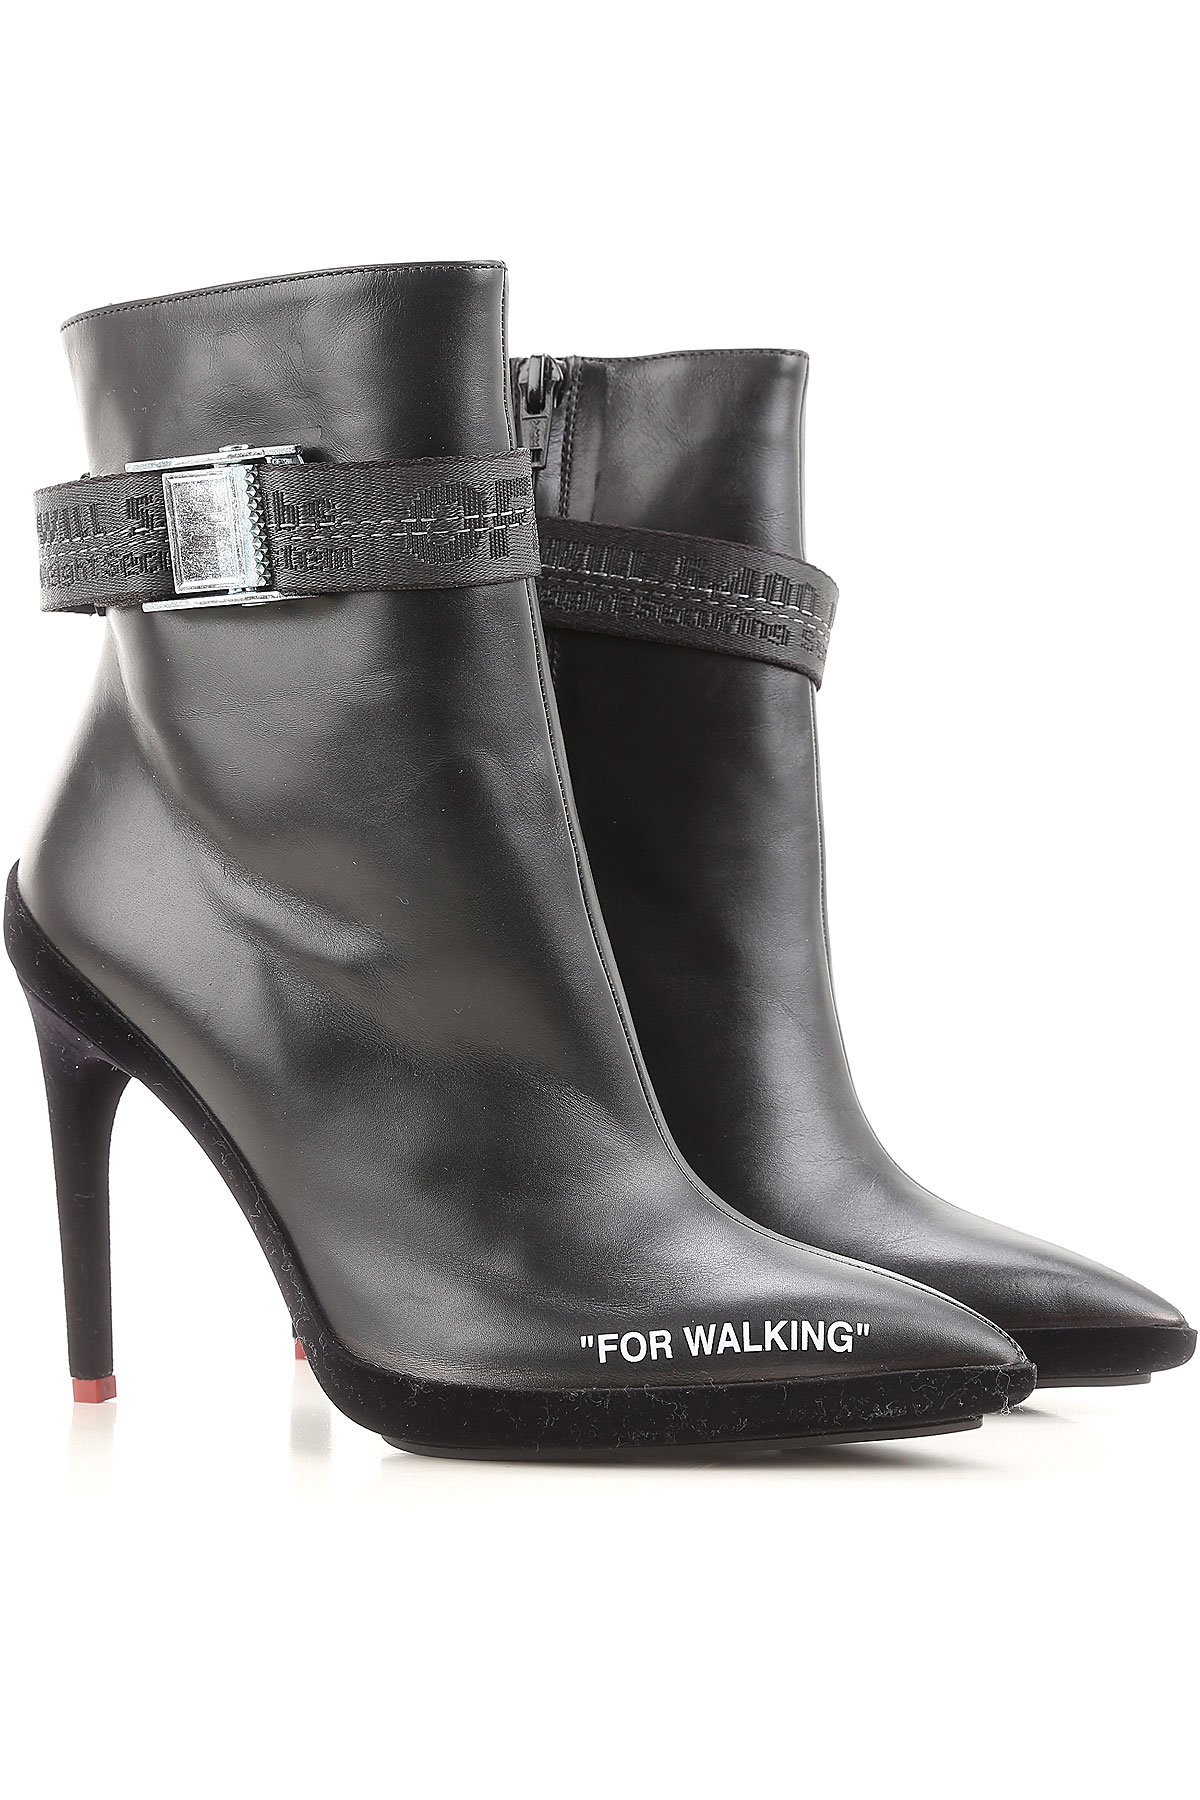 Image of Off-White Virgil Abloh Boots for Women, Booties On Sale, Black, Leather, 2017, 5 6 7 9